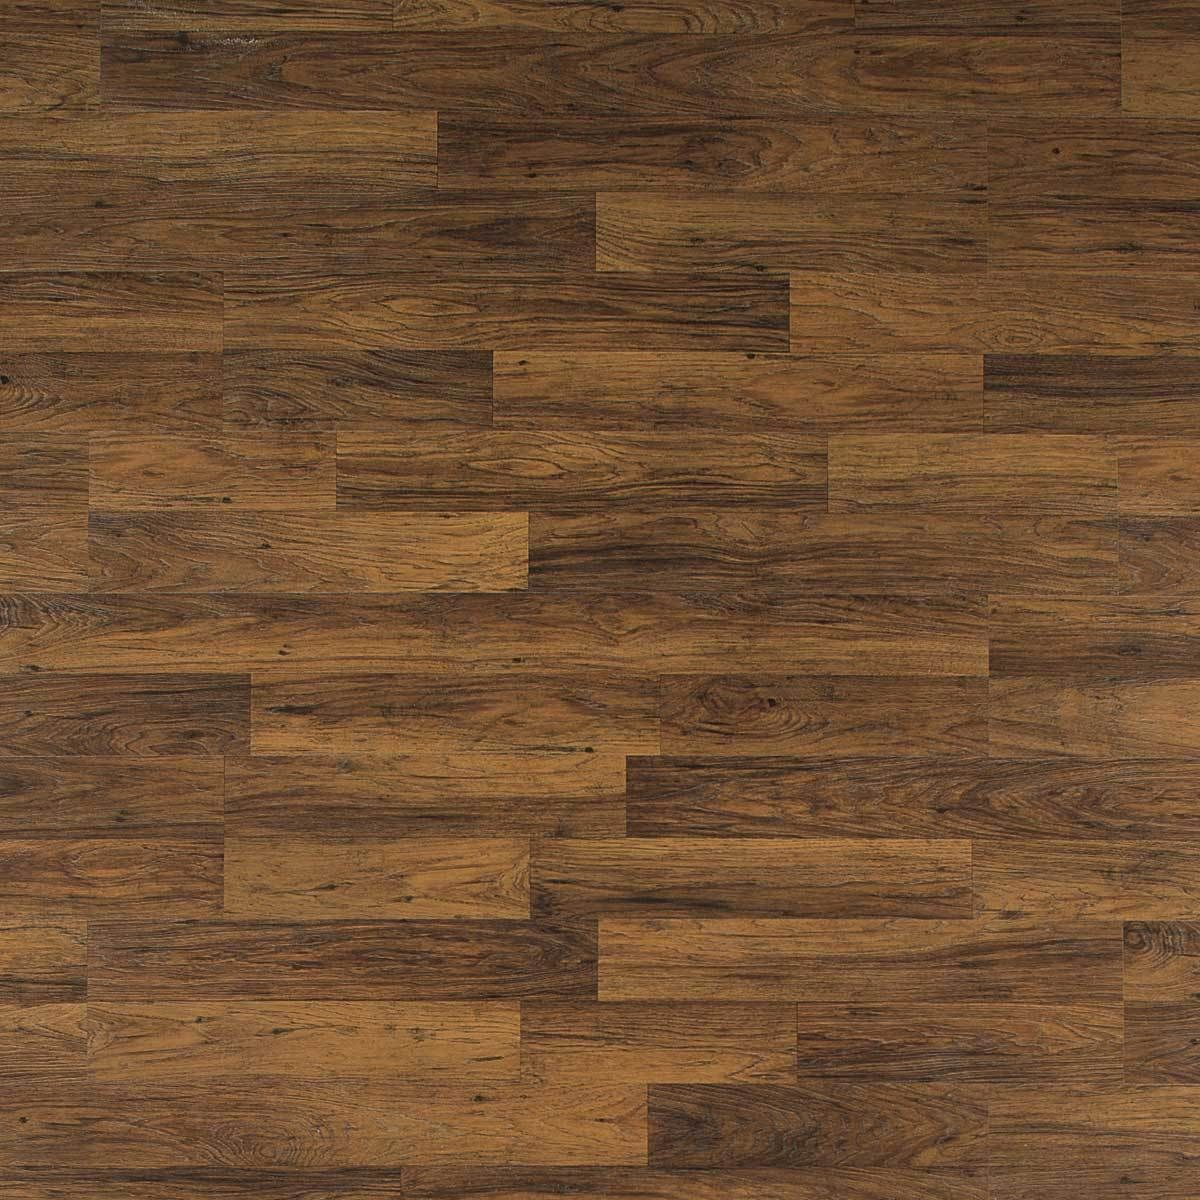 Pin On Hardwood Flooring Concepts